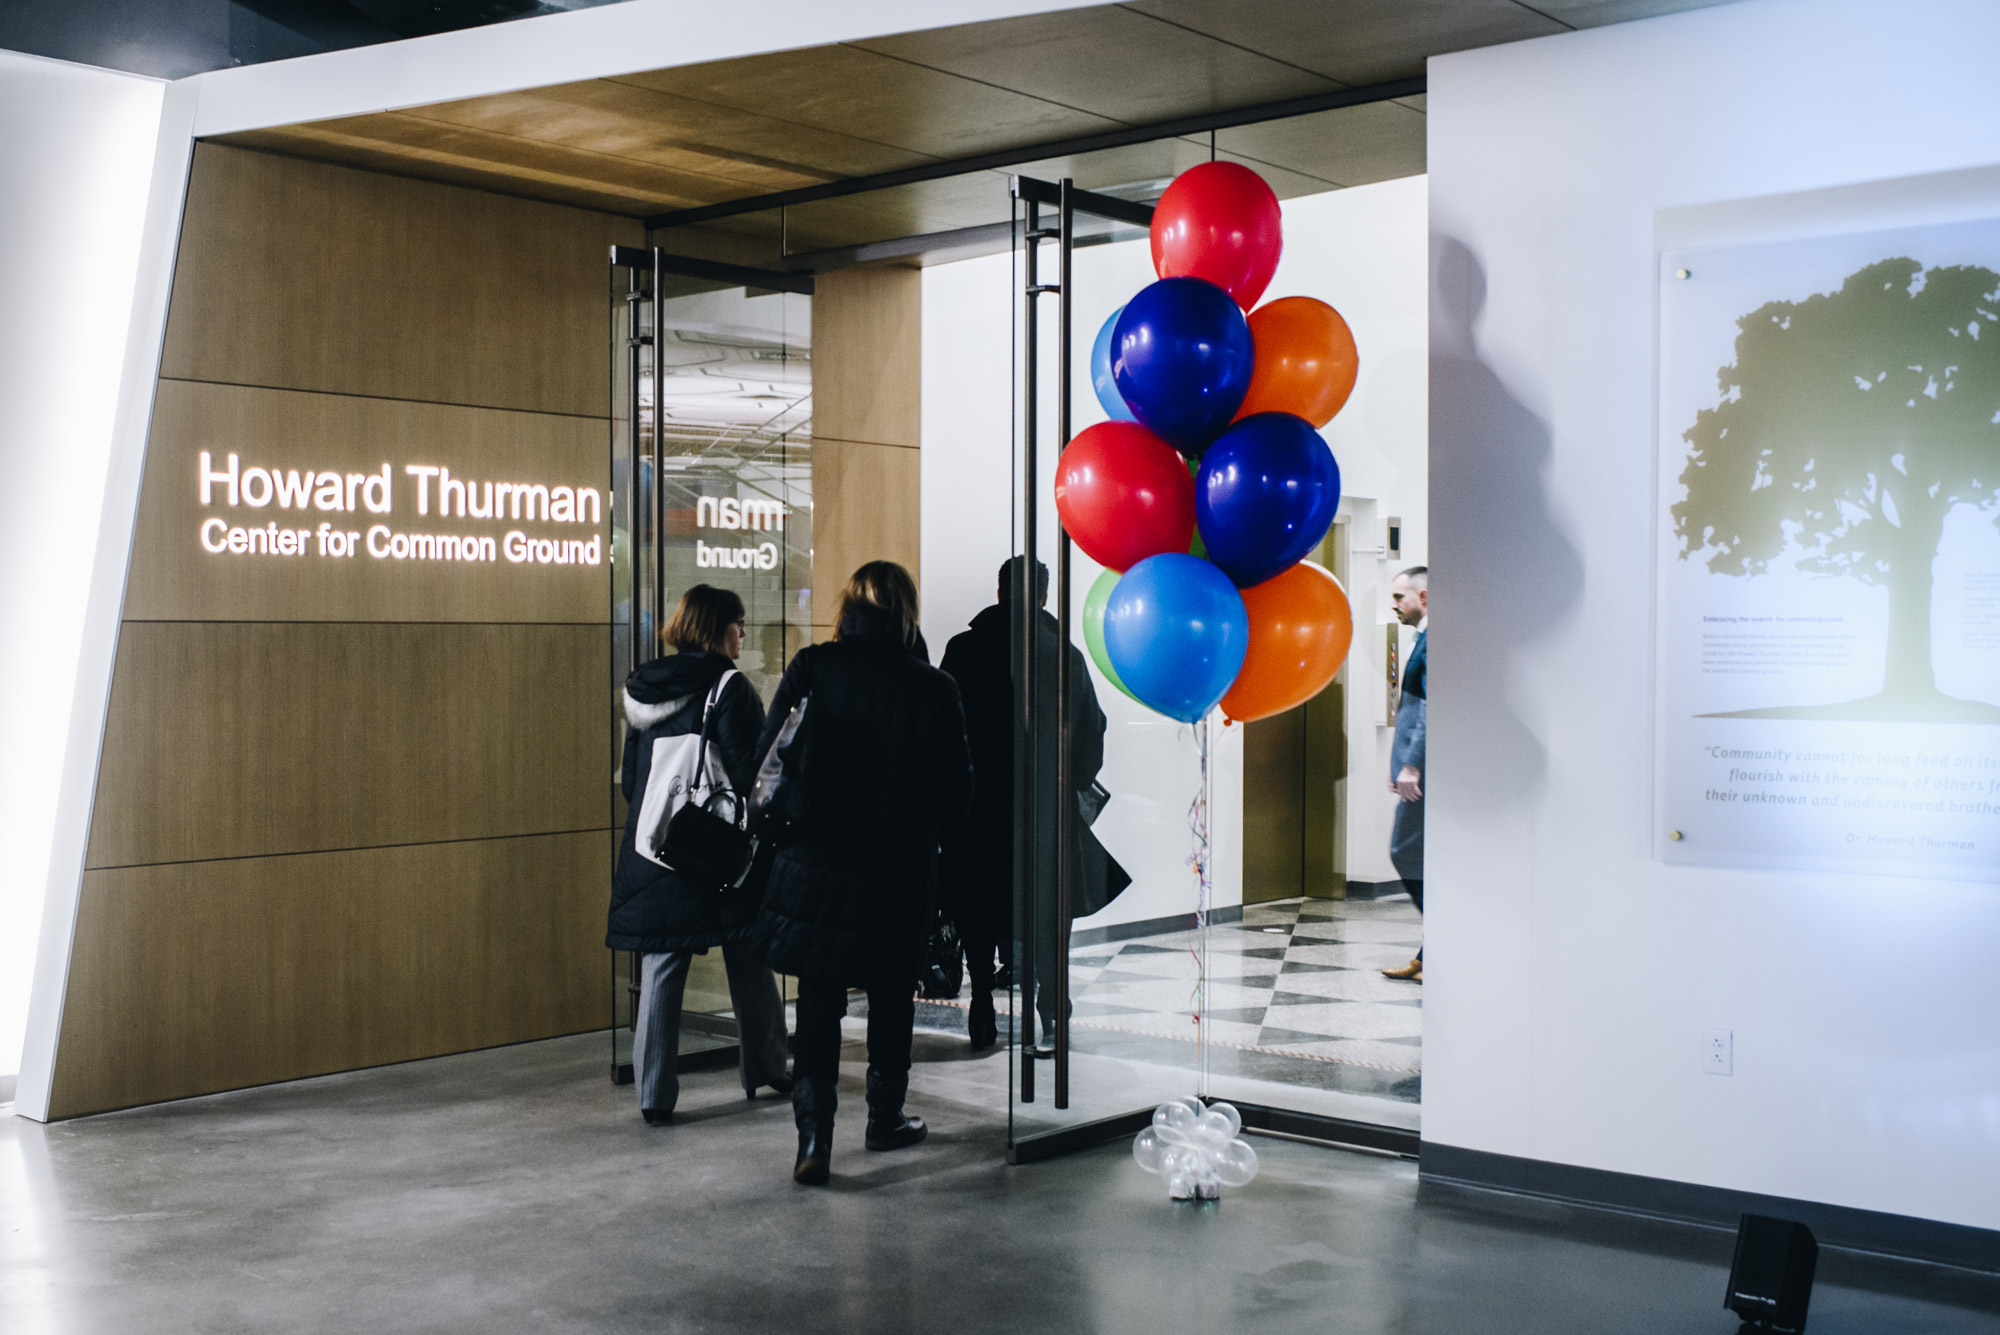 People walk into the brand new Howard Thurman Center during the grand opening. Colorful balloons mark the entrance.